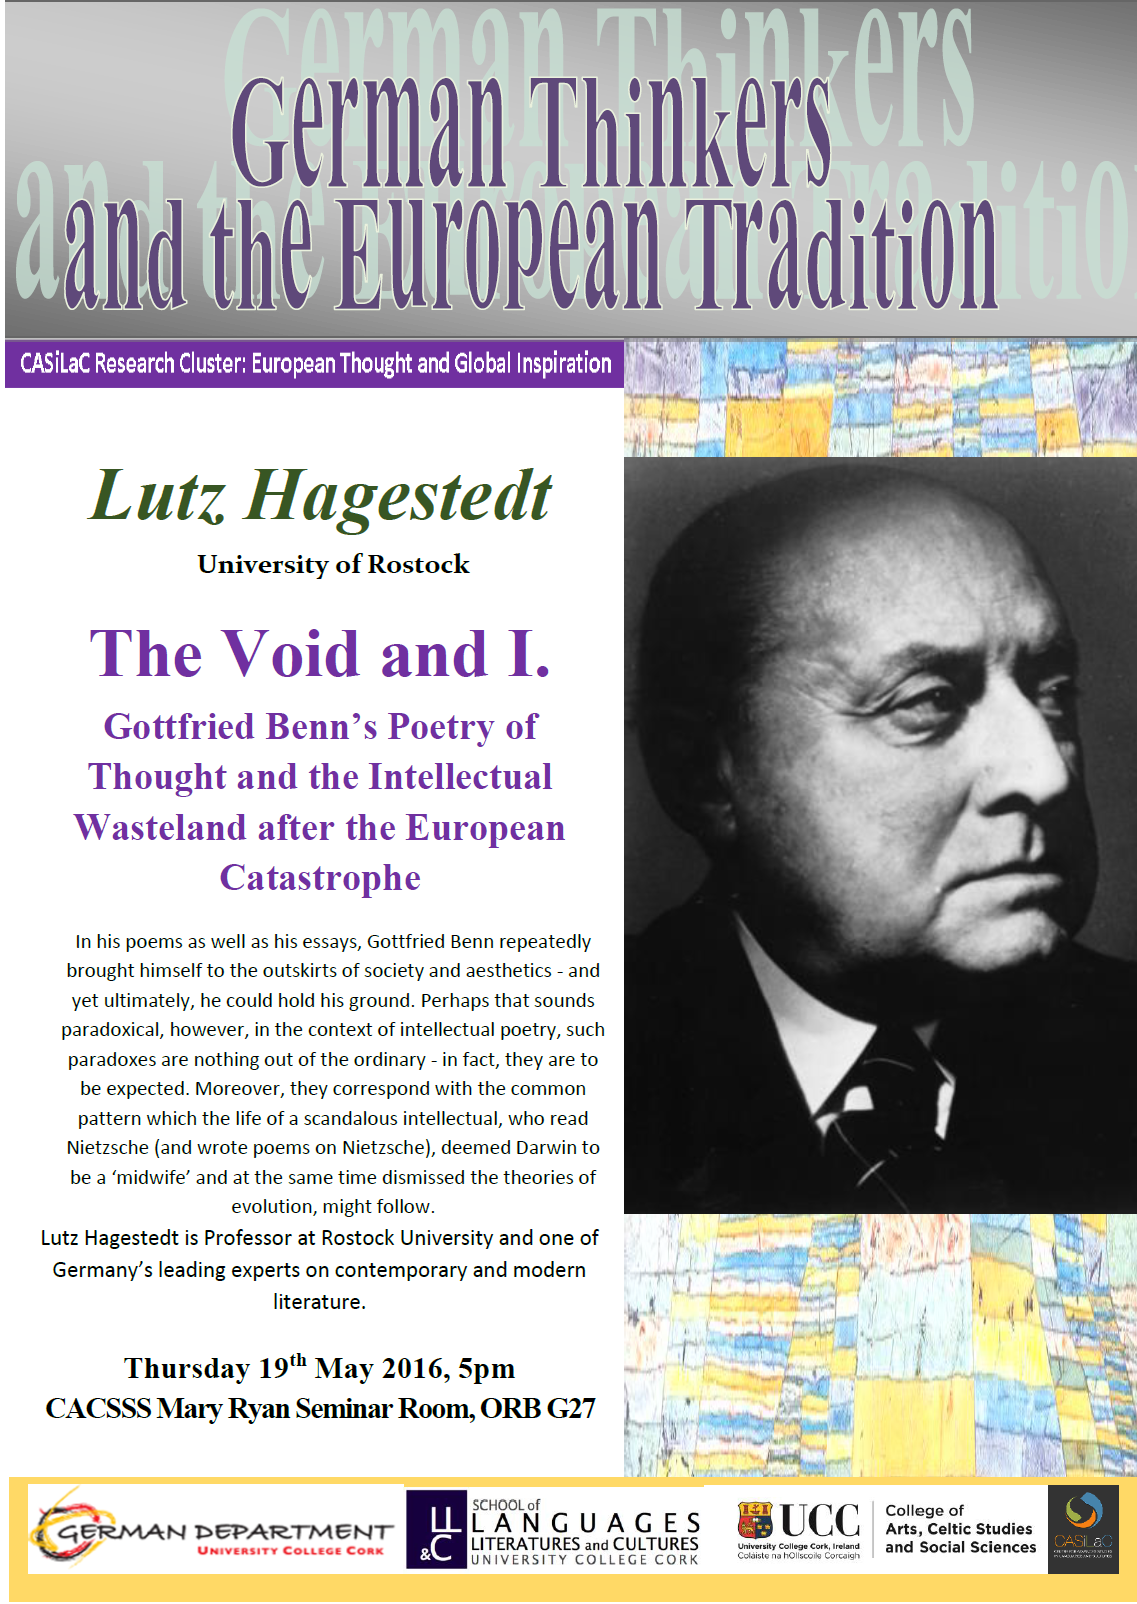 Lutz Hagestedt, University of Rostock, presents 'The Void and I.'